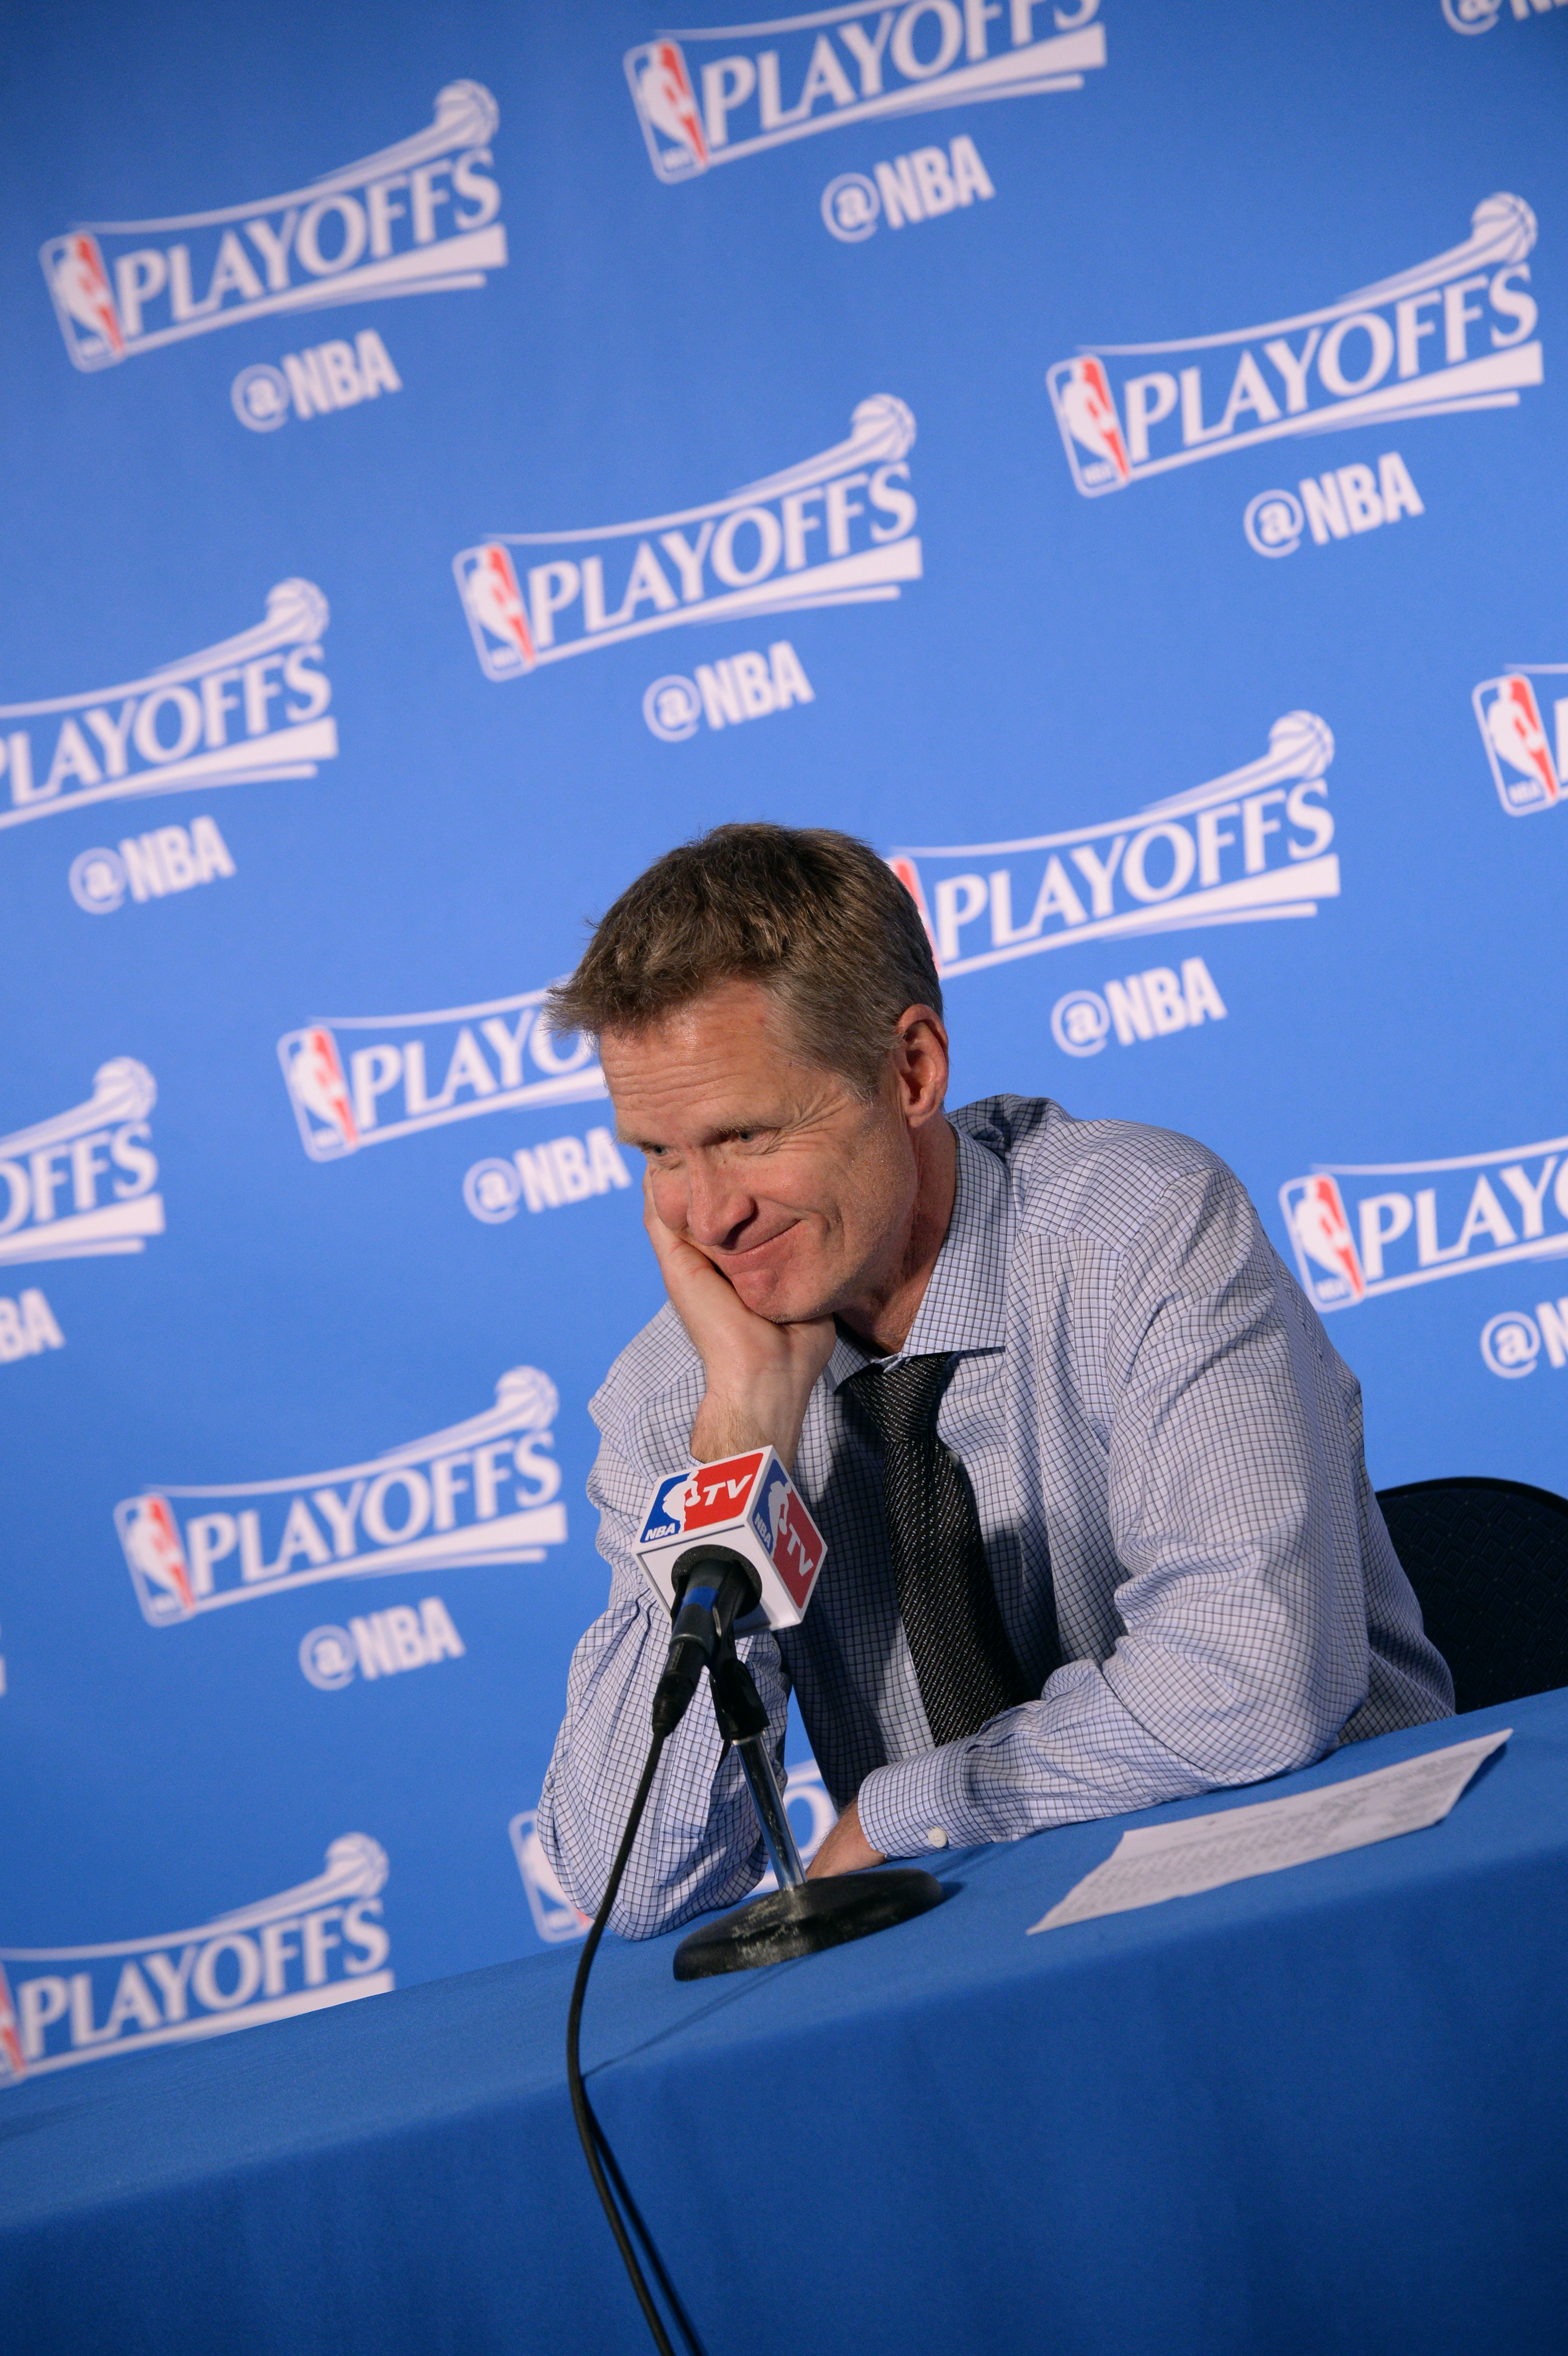 OAKLAND, CA - APRIL 18:  Head coach Steve Kerr of the Golden State Warriors speaks at a post game press conference after Game Two of the Western Conference Quarterfinals against the Houston Rockets during the 2016 NBA Playoffs on April 18, 2016 at ORACLE